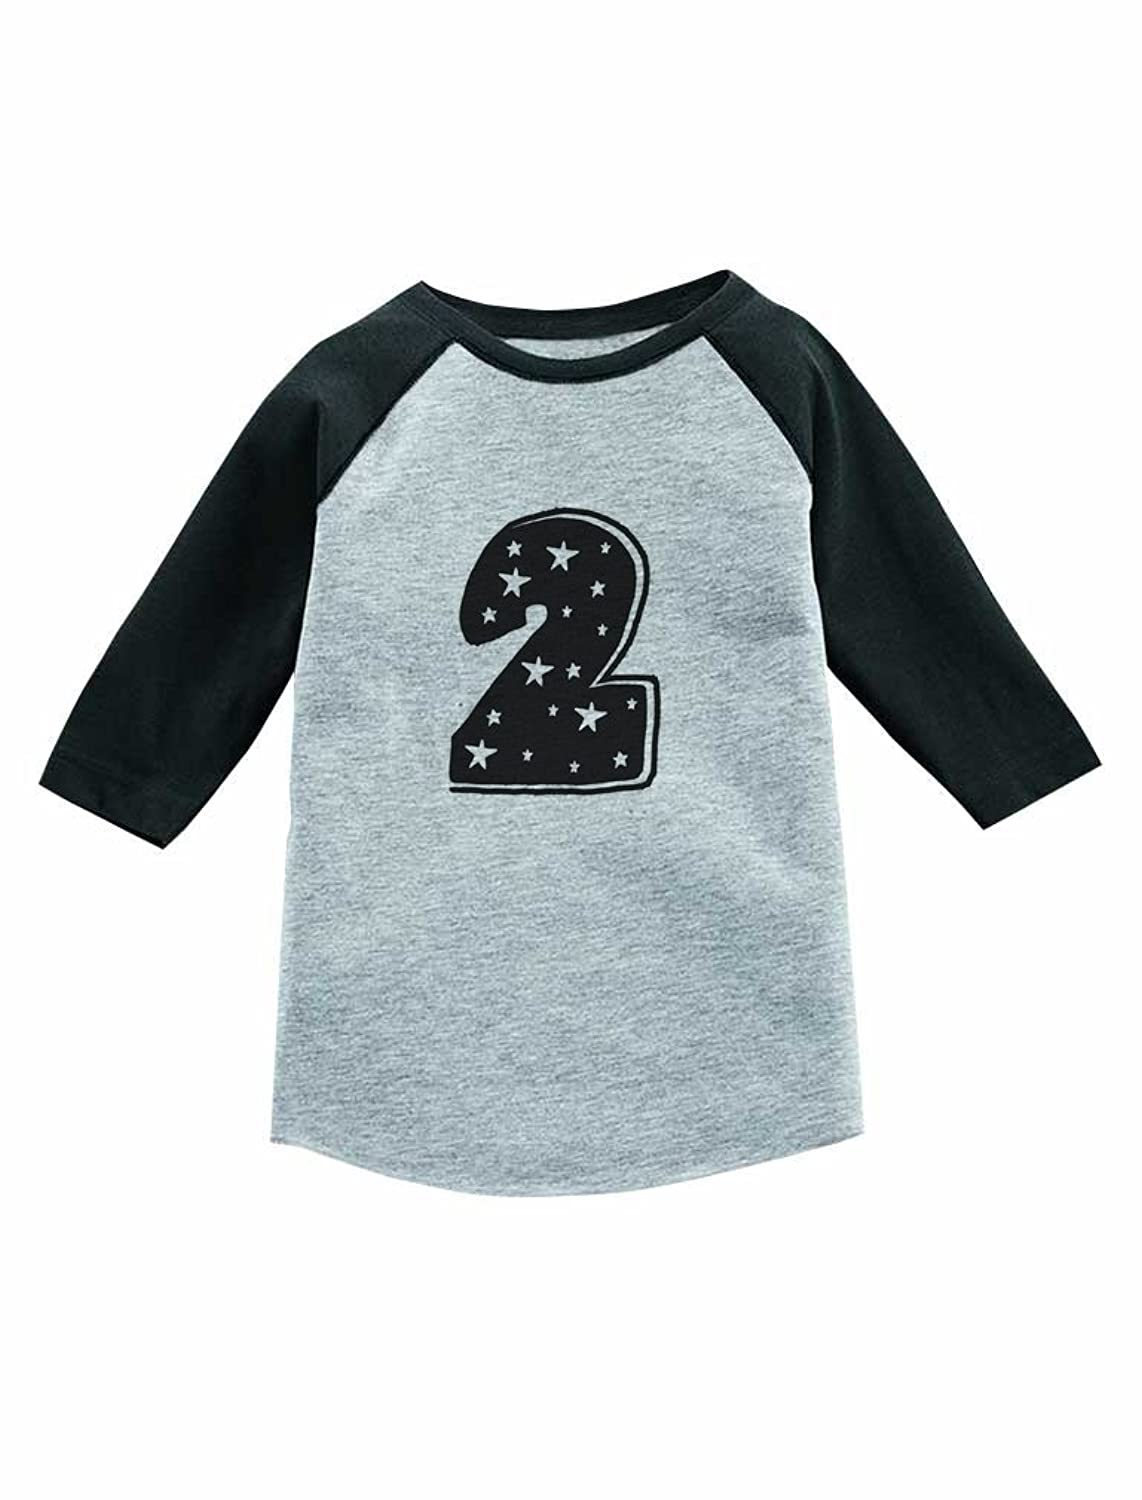 Im 2 Years Old Superstar Birthday Gift 3 4 Sleeve Baseball Jersey Toddler